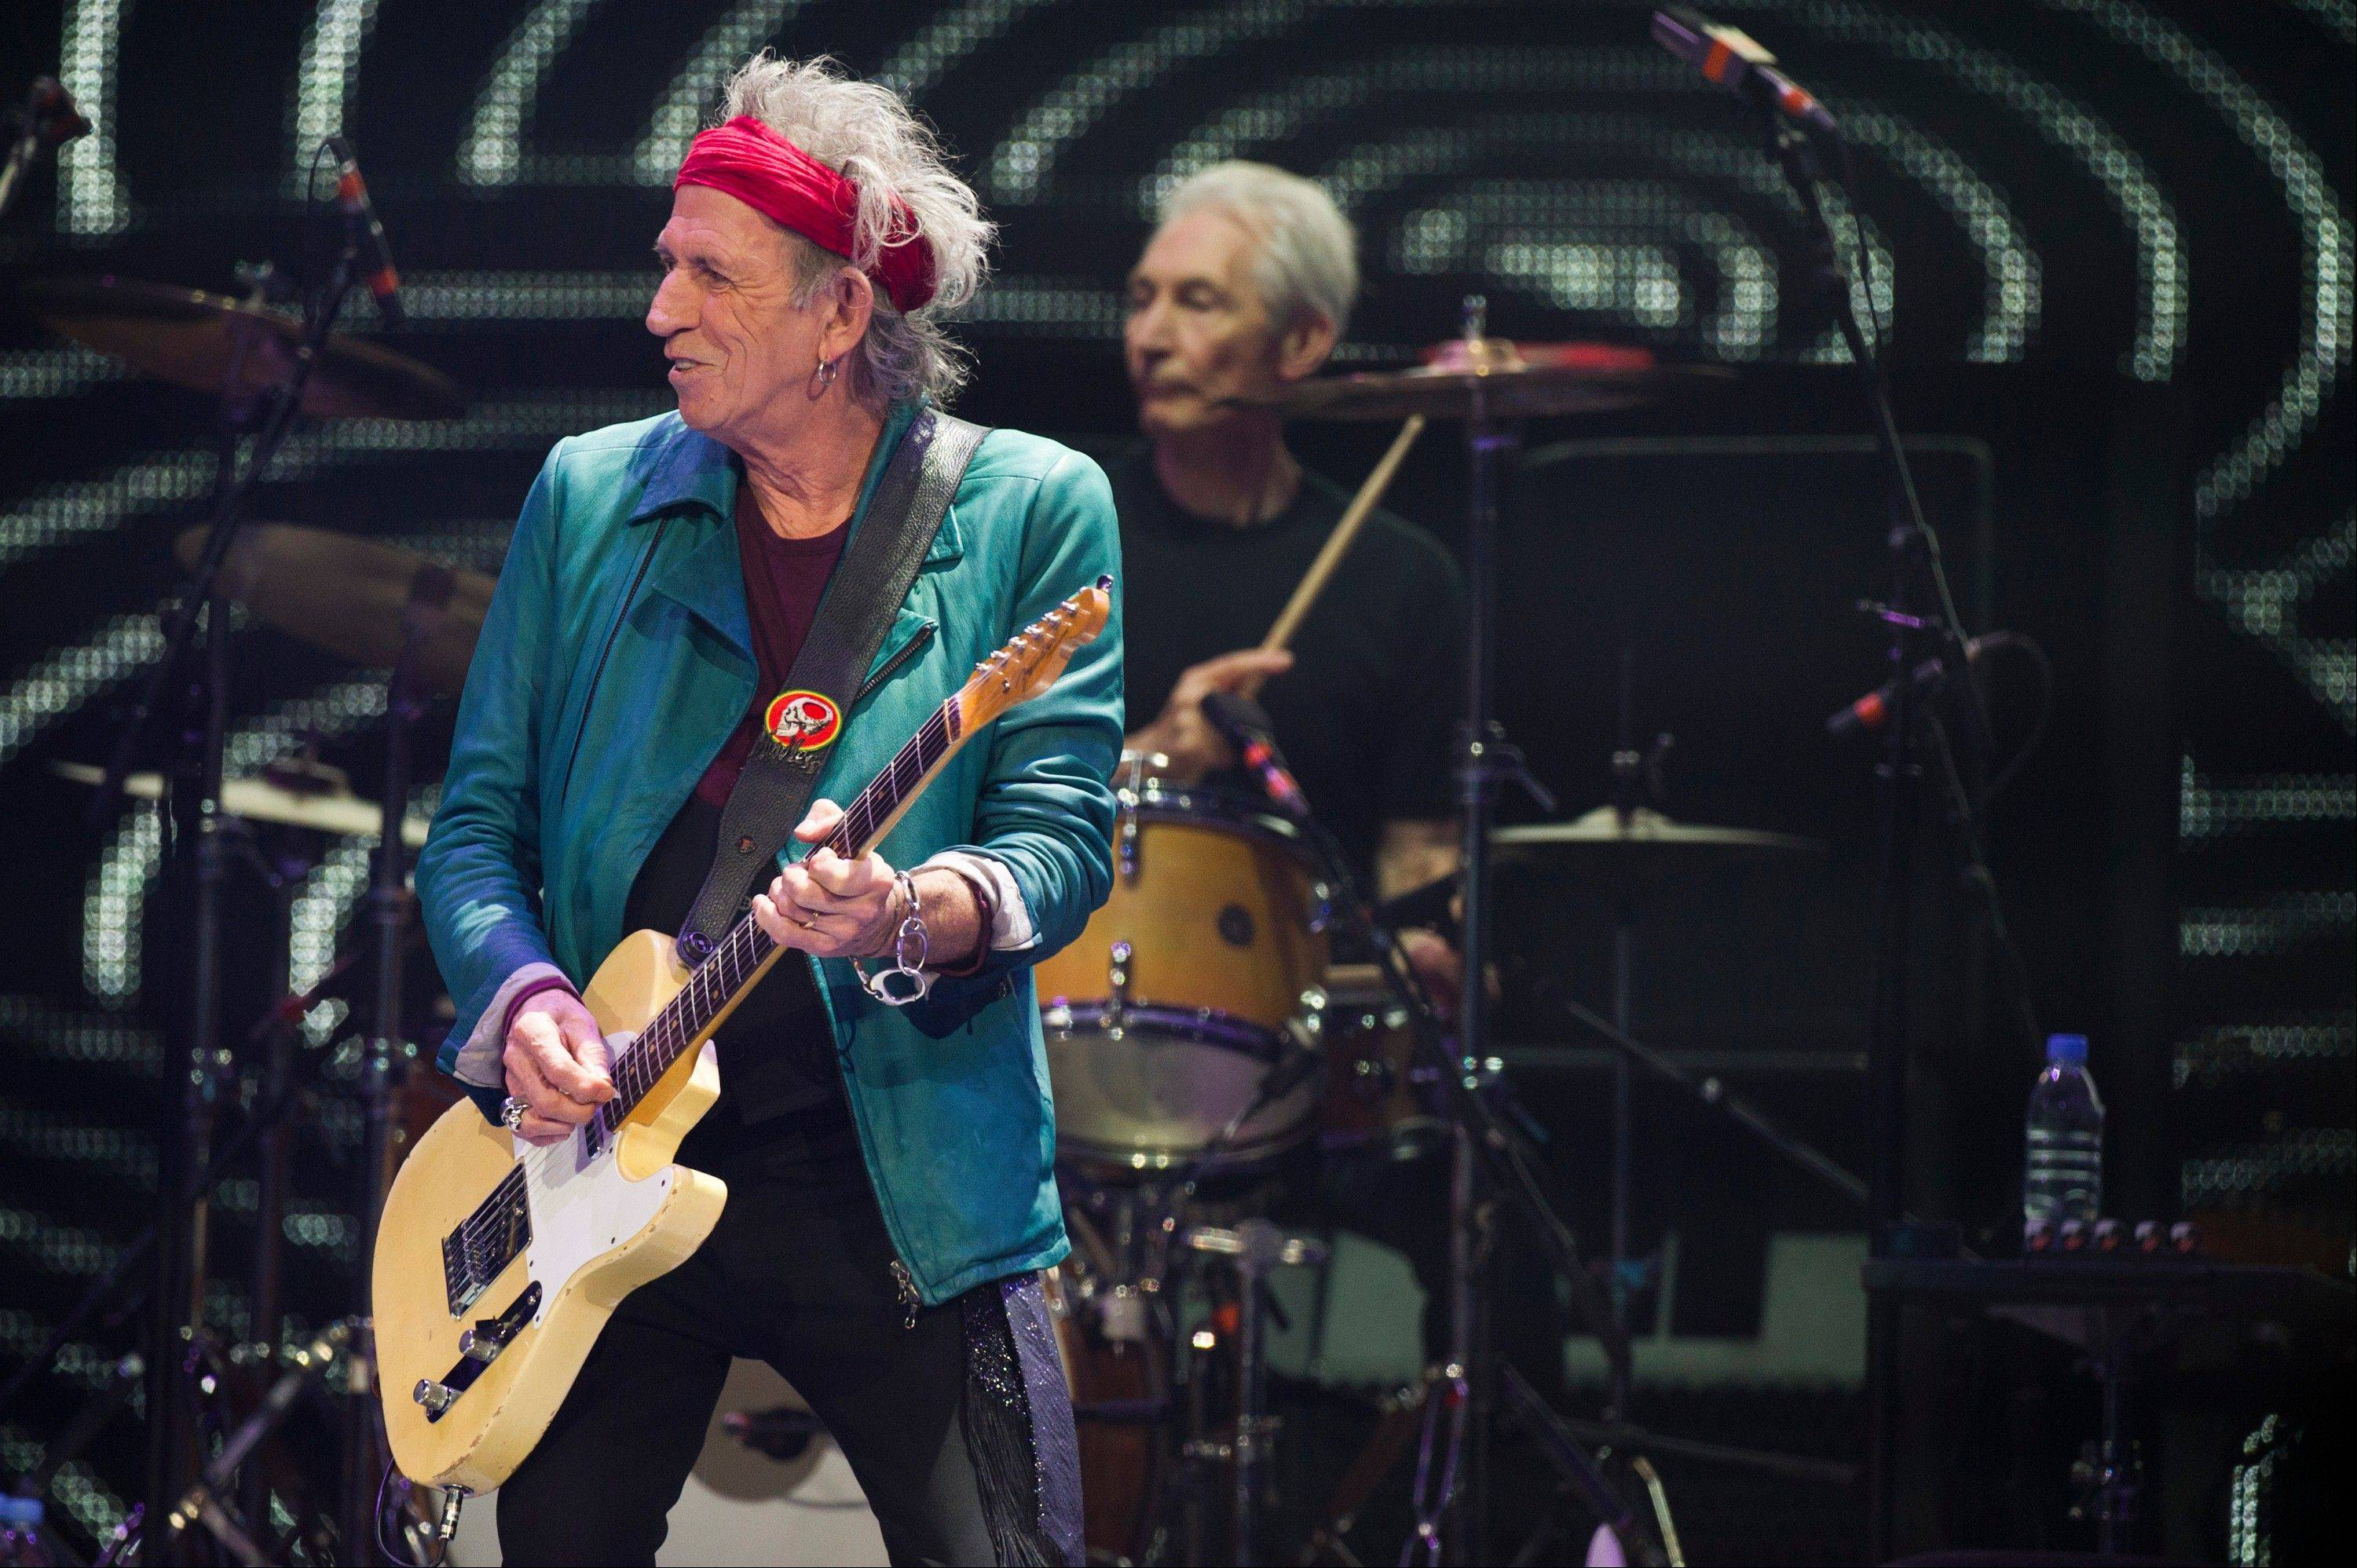 Keith Richards, left, and Charlie Watts of The Rolling Stones perform in concert on Saturday in New York.